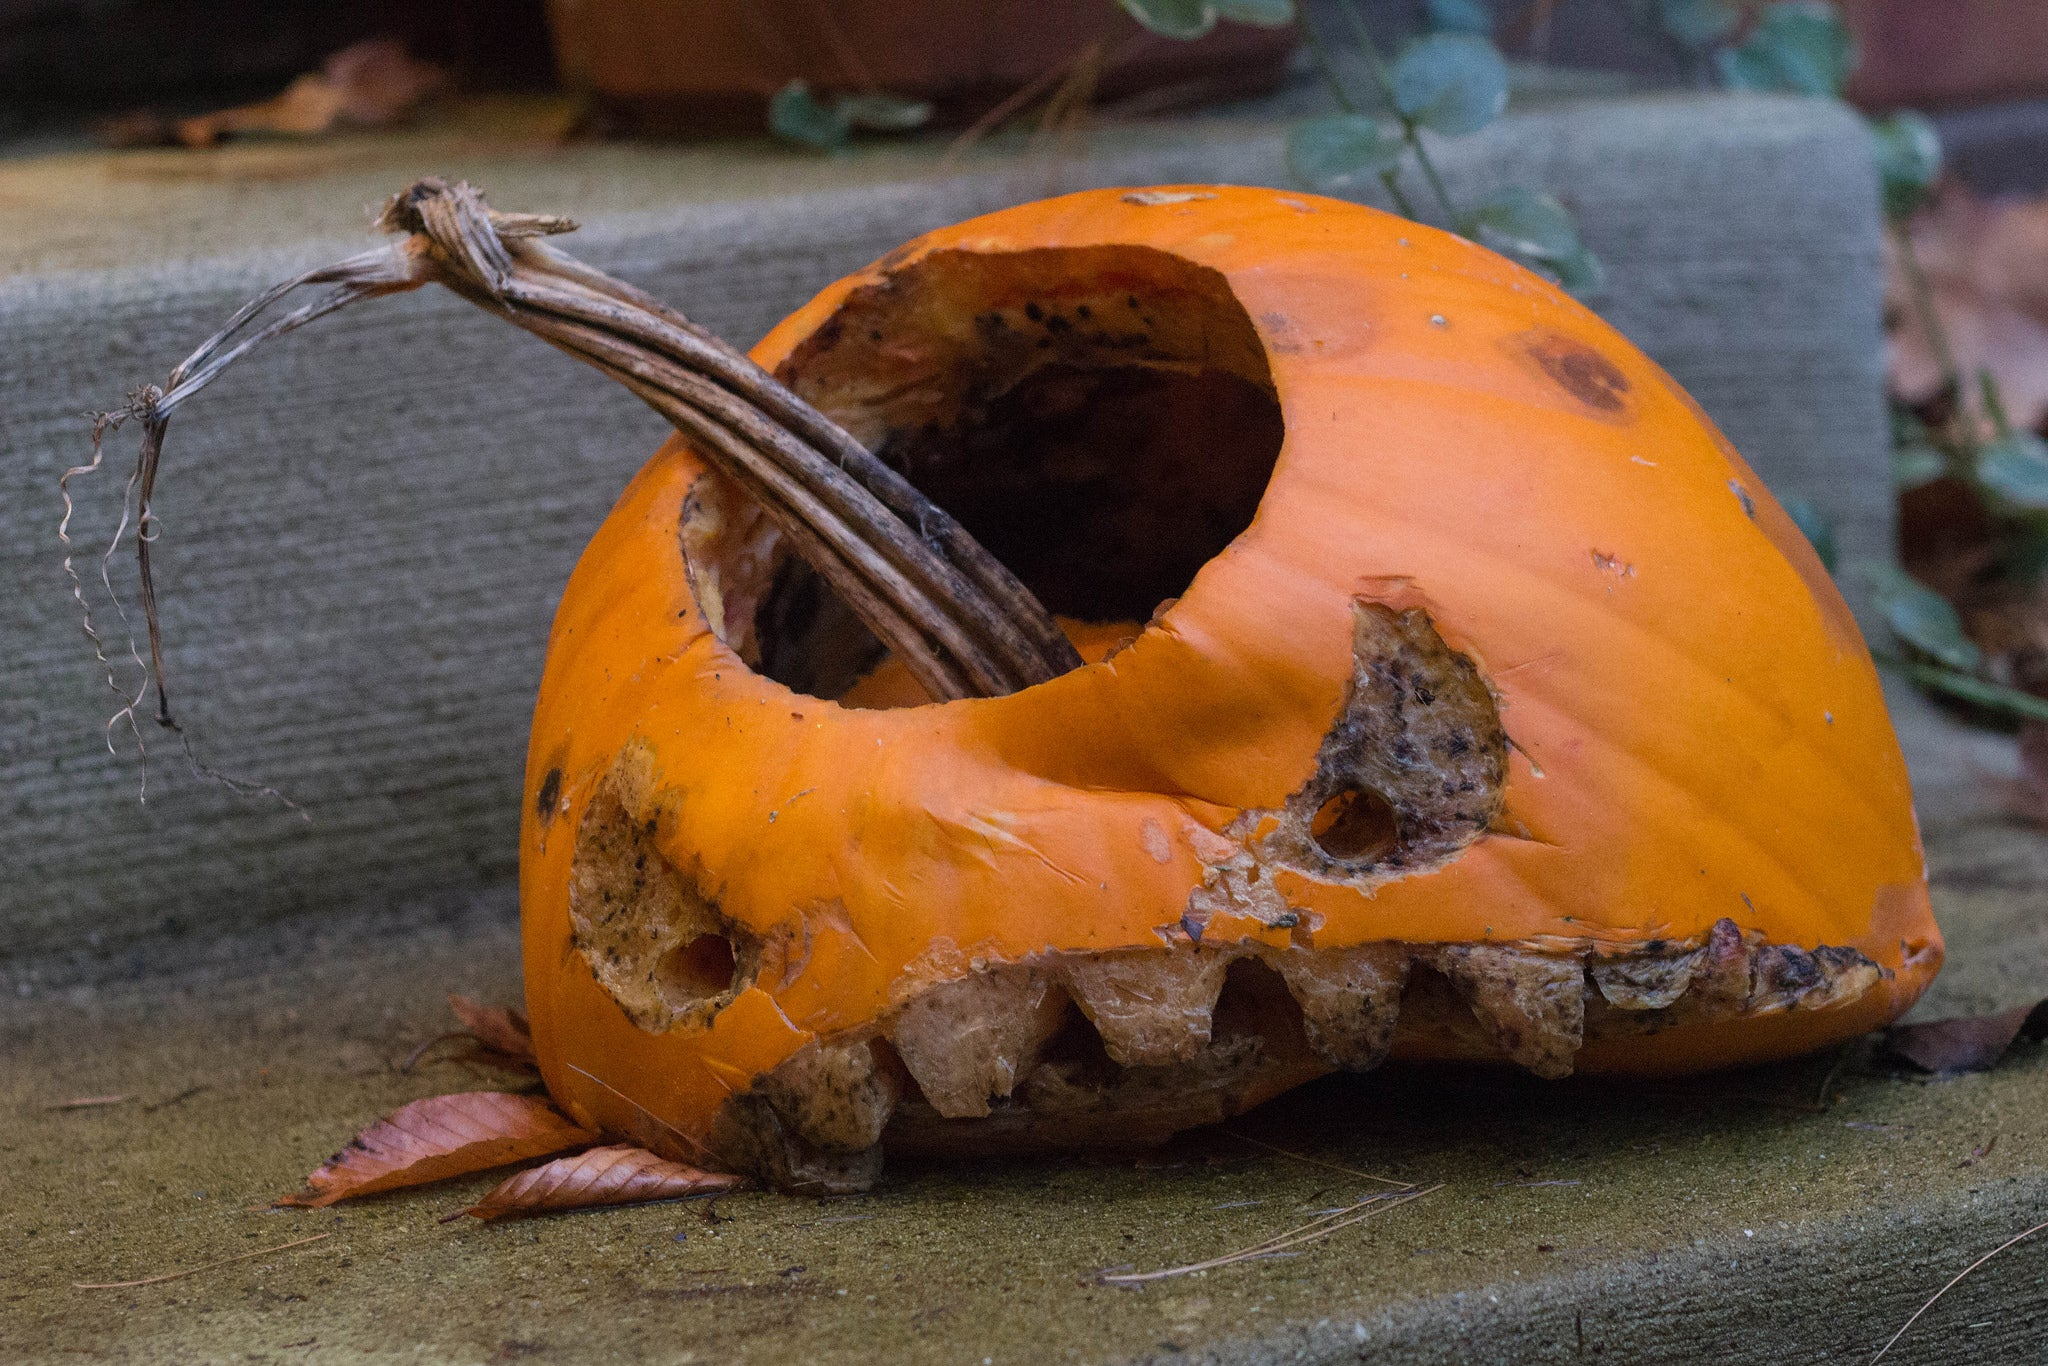 How To Avoid A Rotten Jack-O'-Lantern